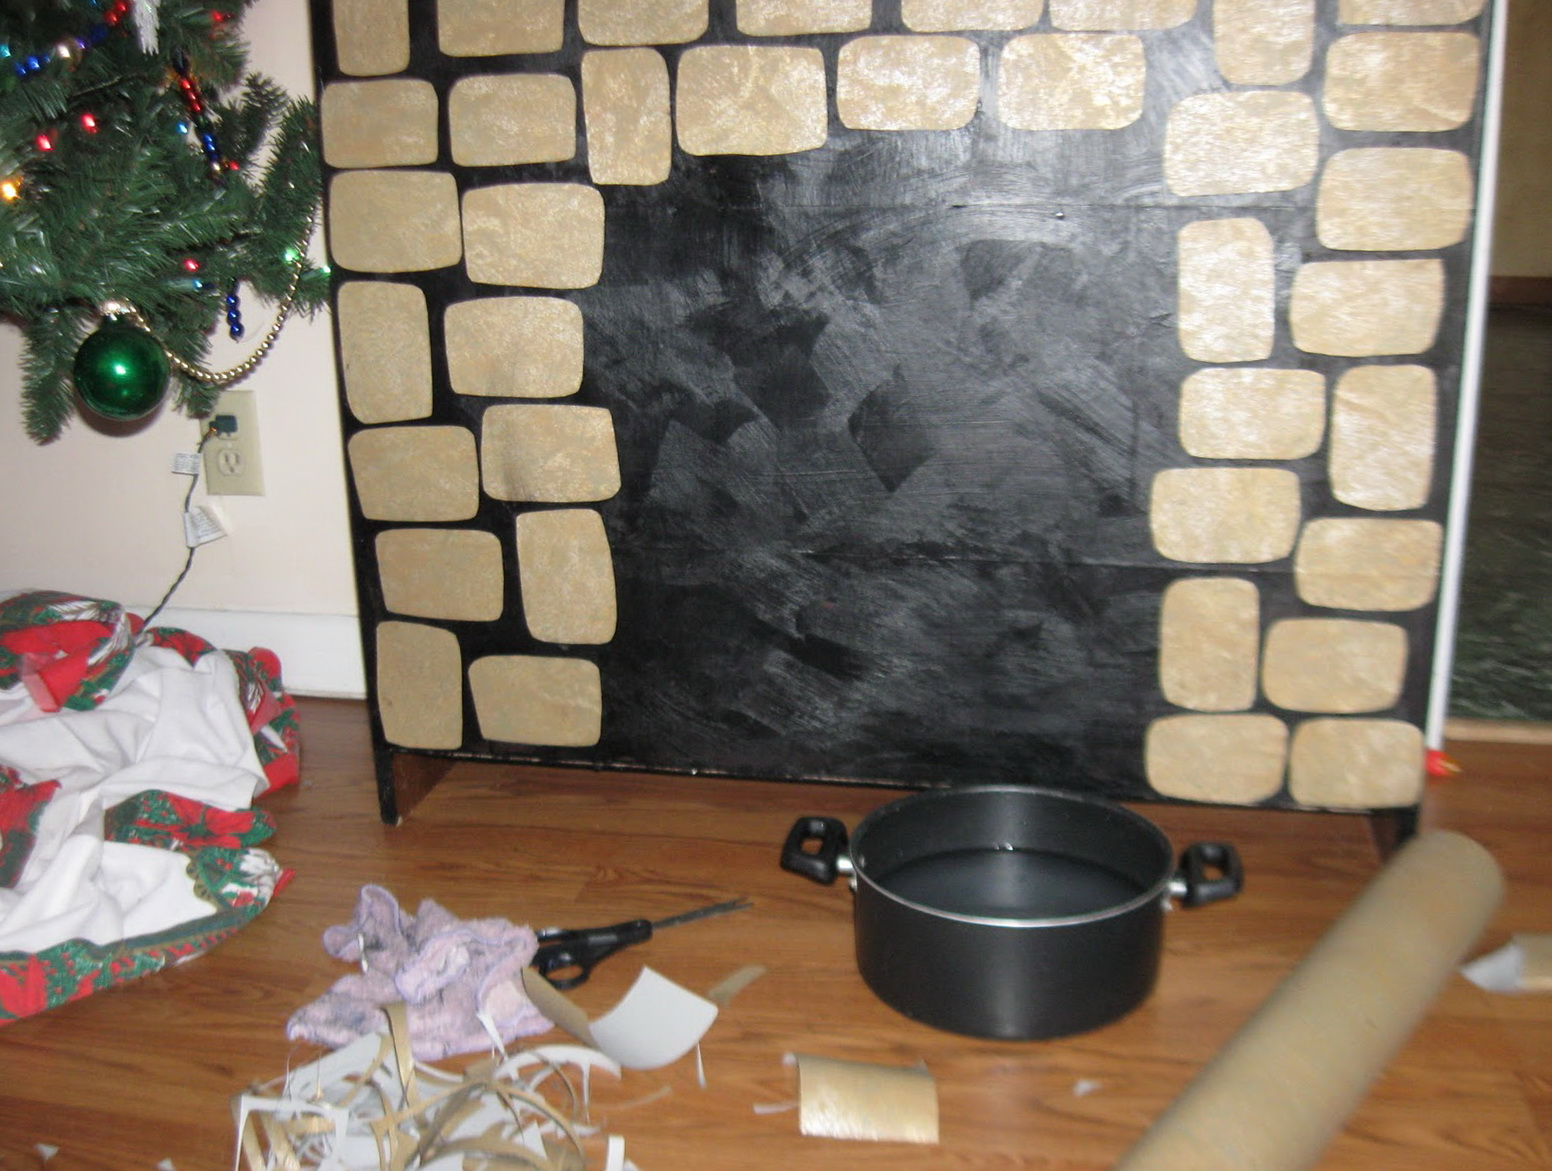 Construction Paper Fireplace Wall Decoration | Home Design Ideas